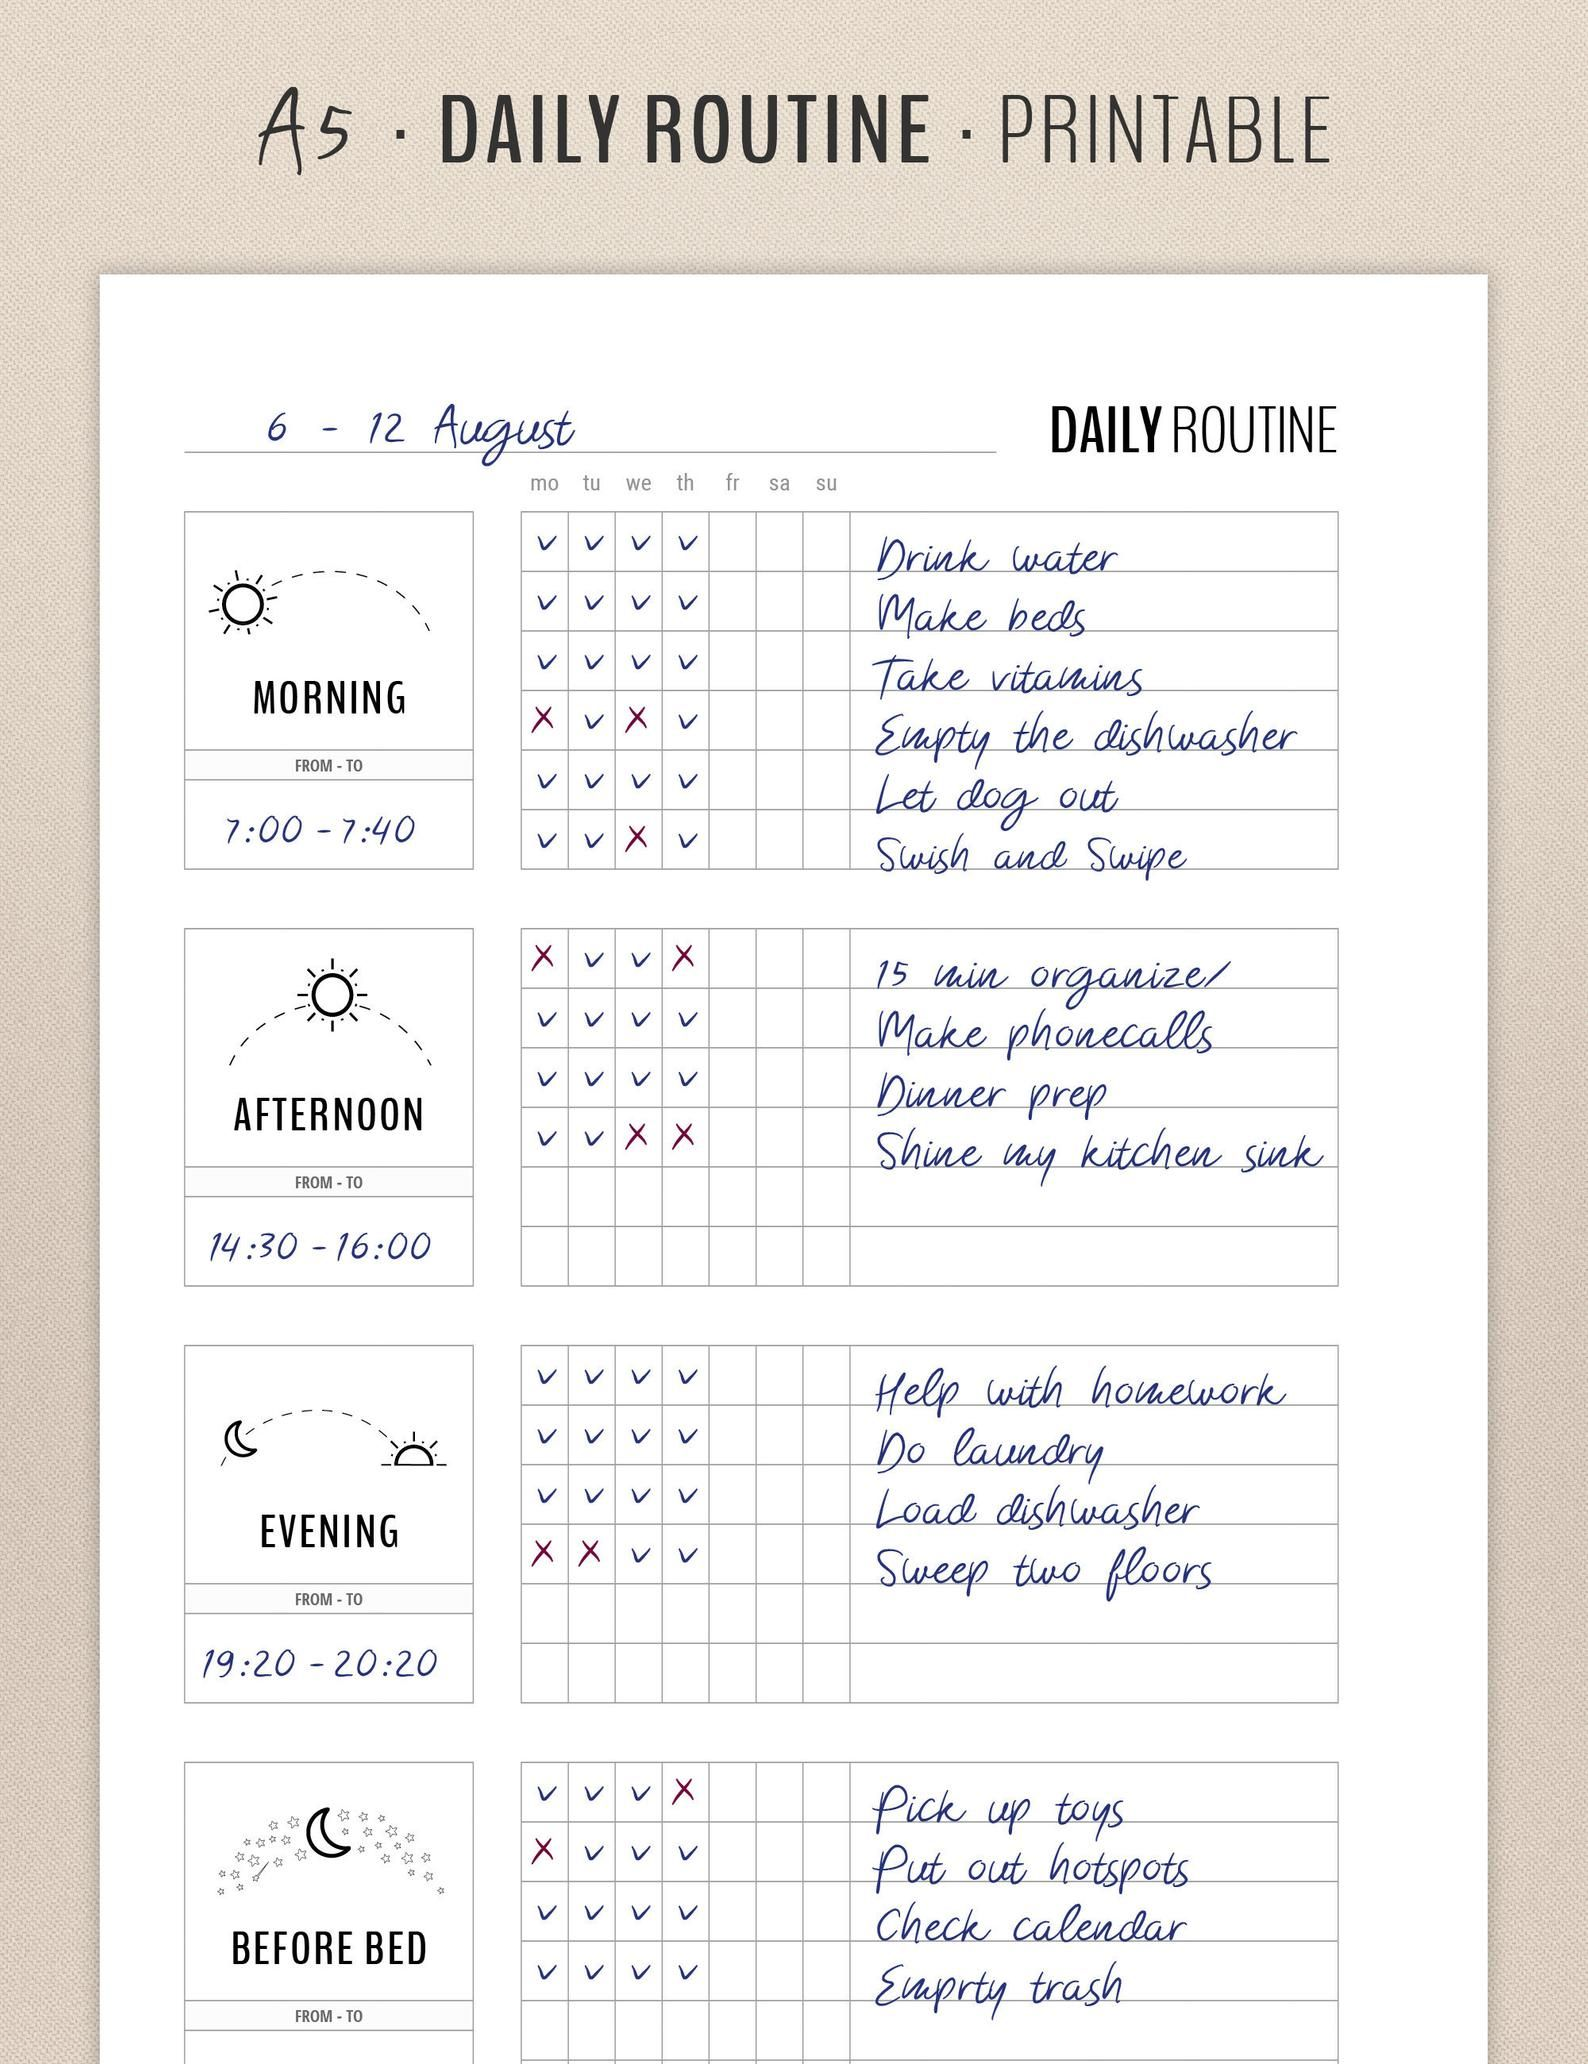 Daily Routine Planner Printable, Flylady Morning R